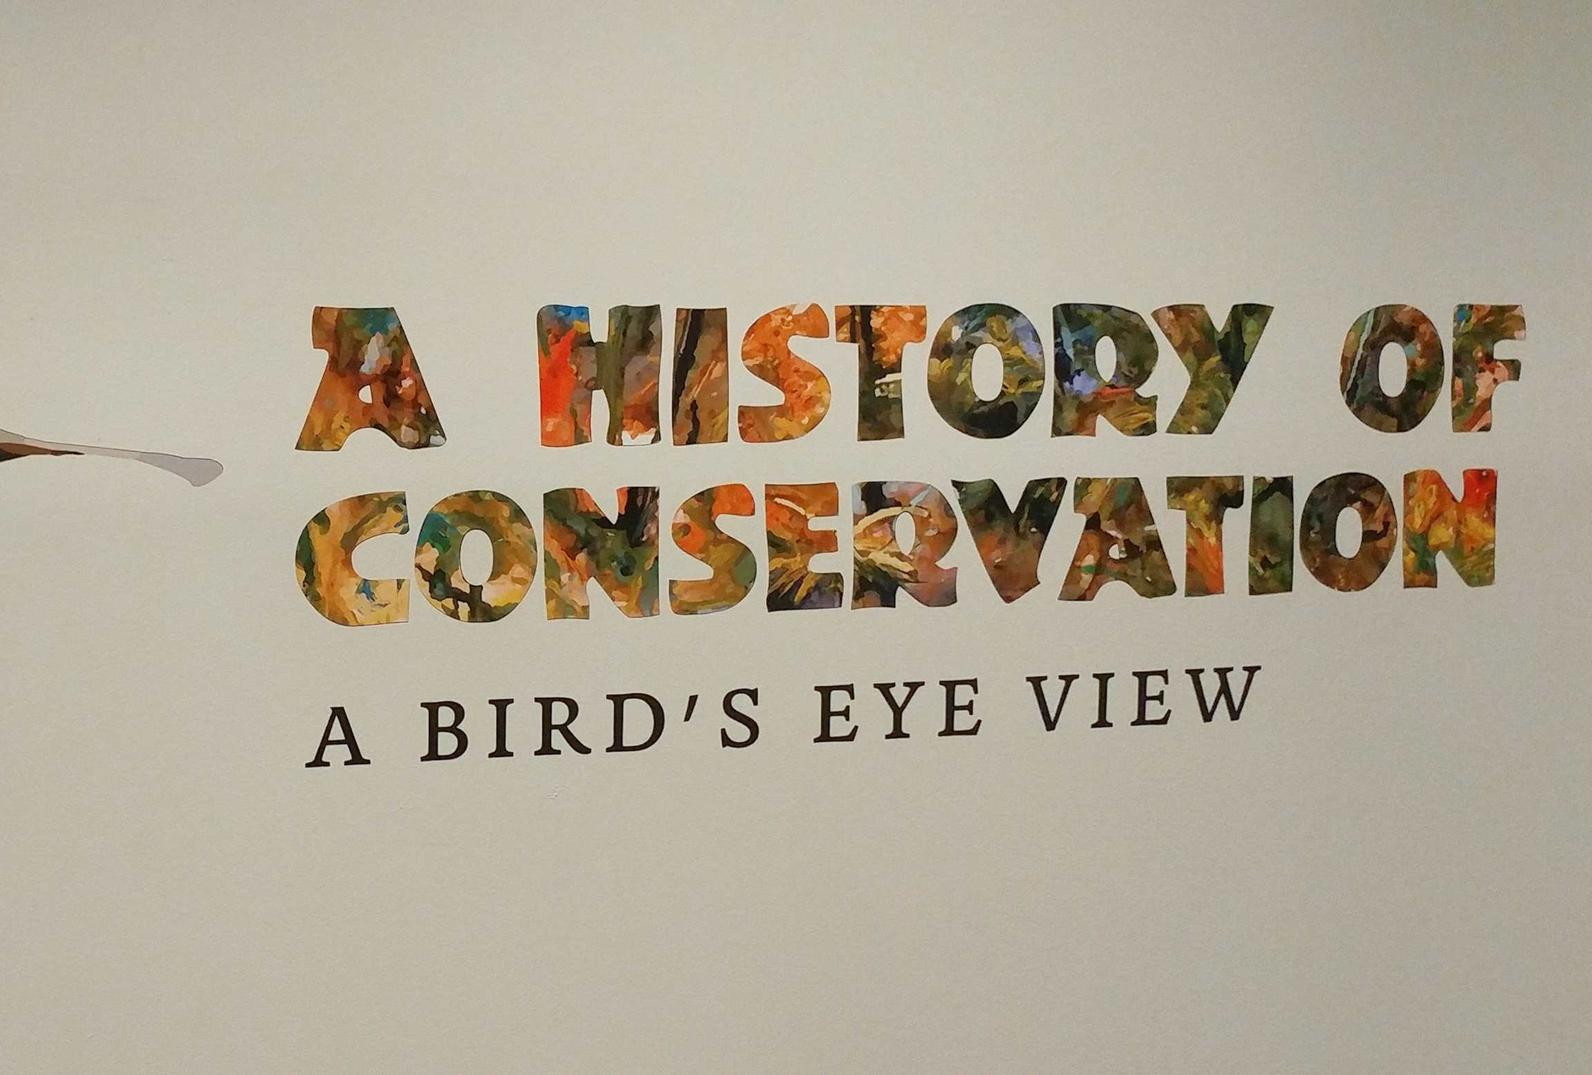 A History of Conservation